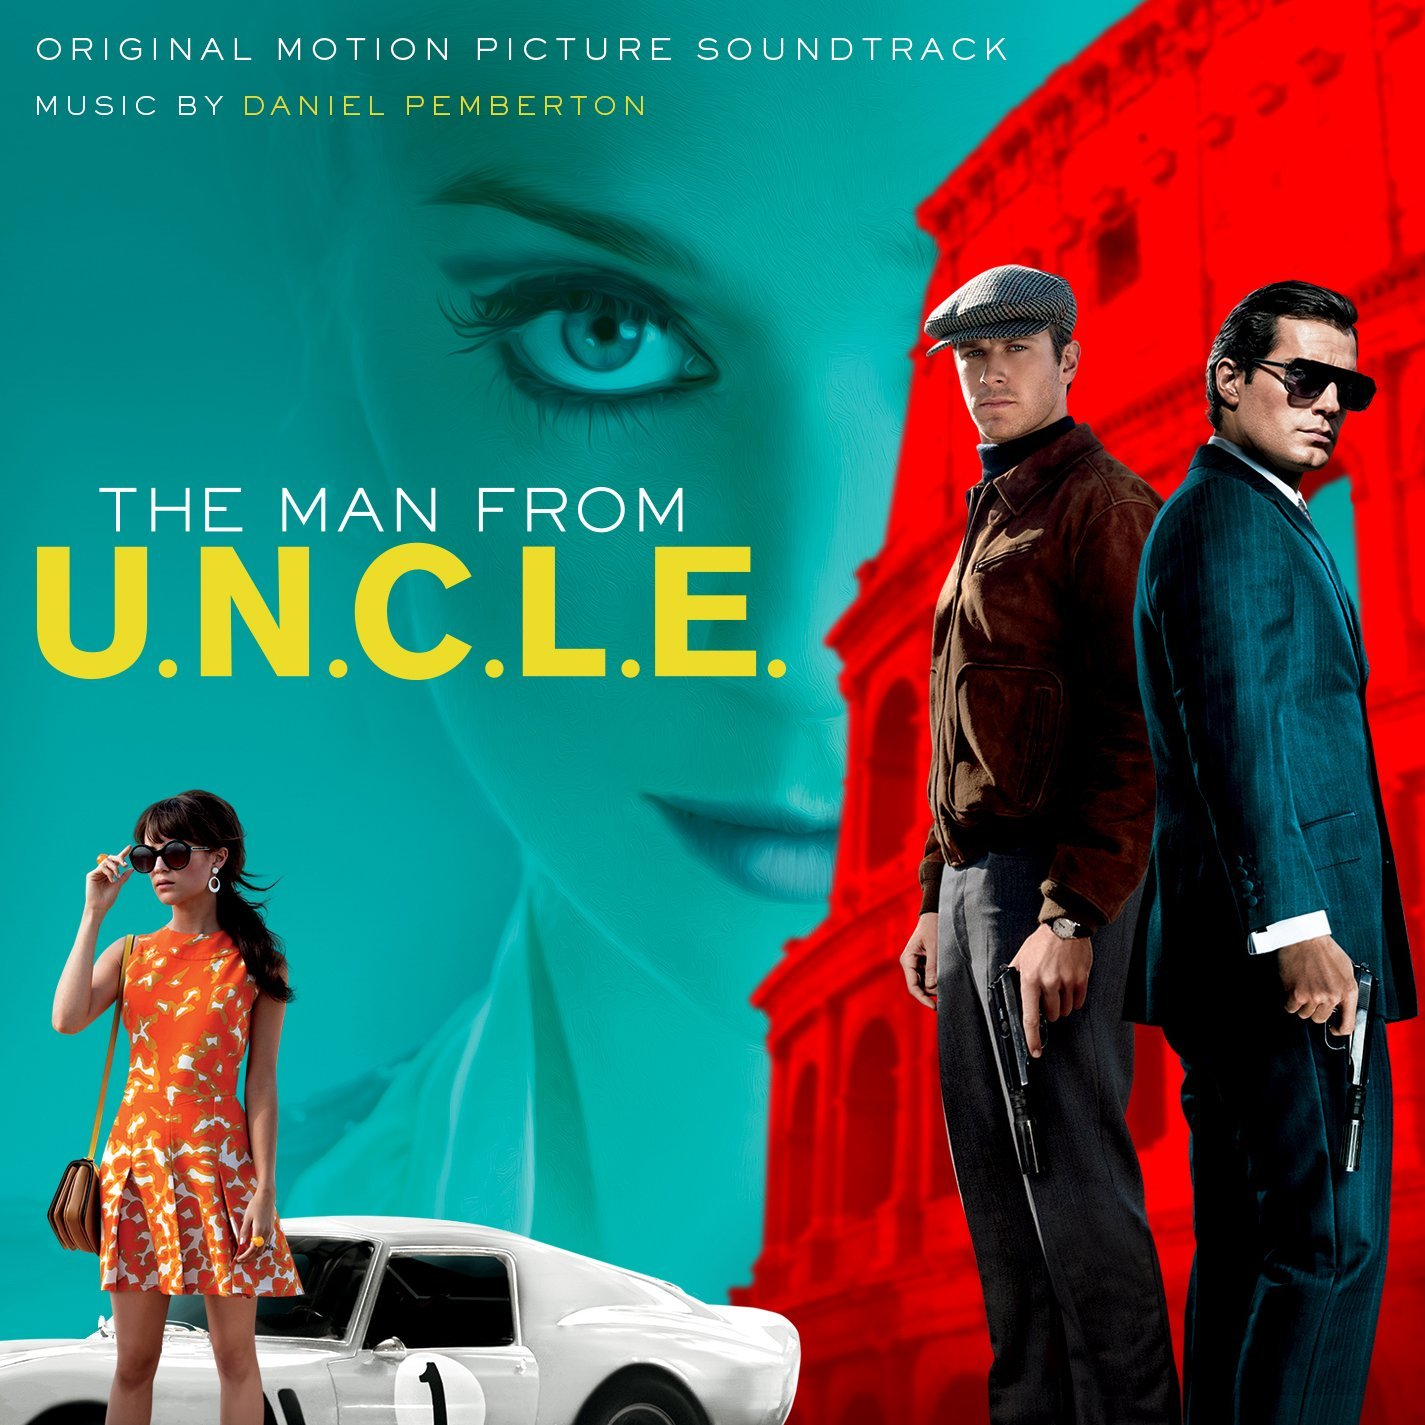 The Man From U.N.C.L.E (Versus)